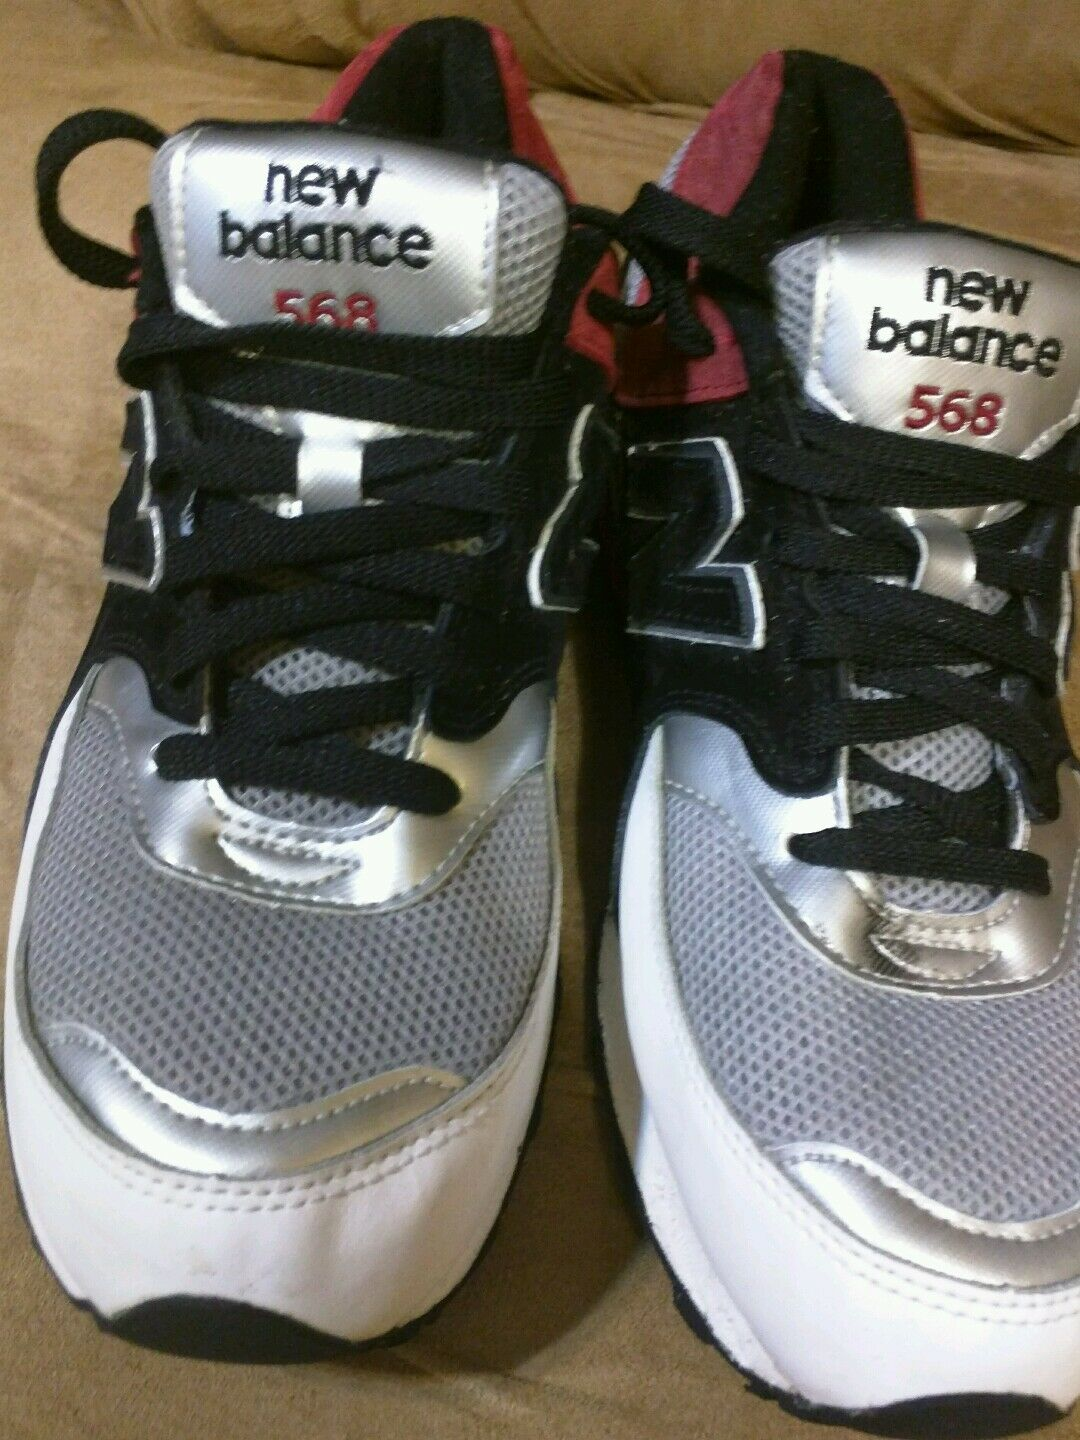 Mens 568 casual athletic running training shoes size 9.5